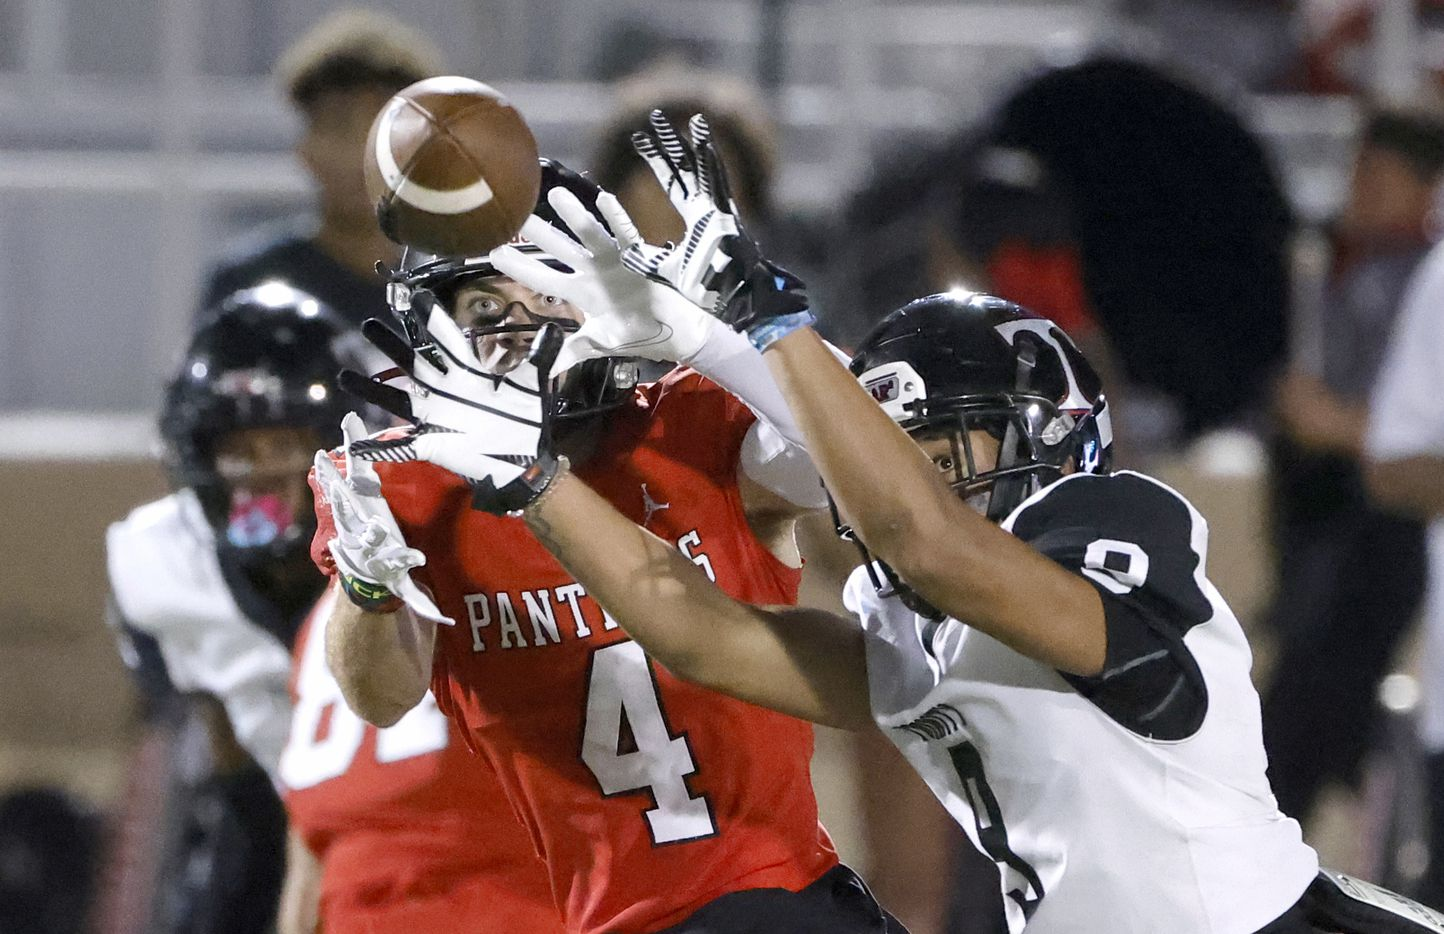 Euless Trinity defender Tovo Asaeli, right, breaks up a pass intended for Colleyville Heritage receiver Hogan Wasson (4), left,  during the first half of a high school football game in Grapevine, Texas on Friday, Sept. 10, 2021. (Michael Ainsworth/Special Contributor)